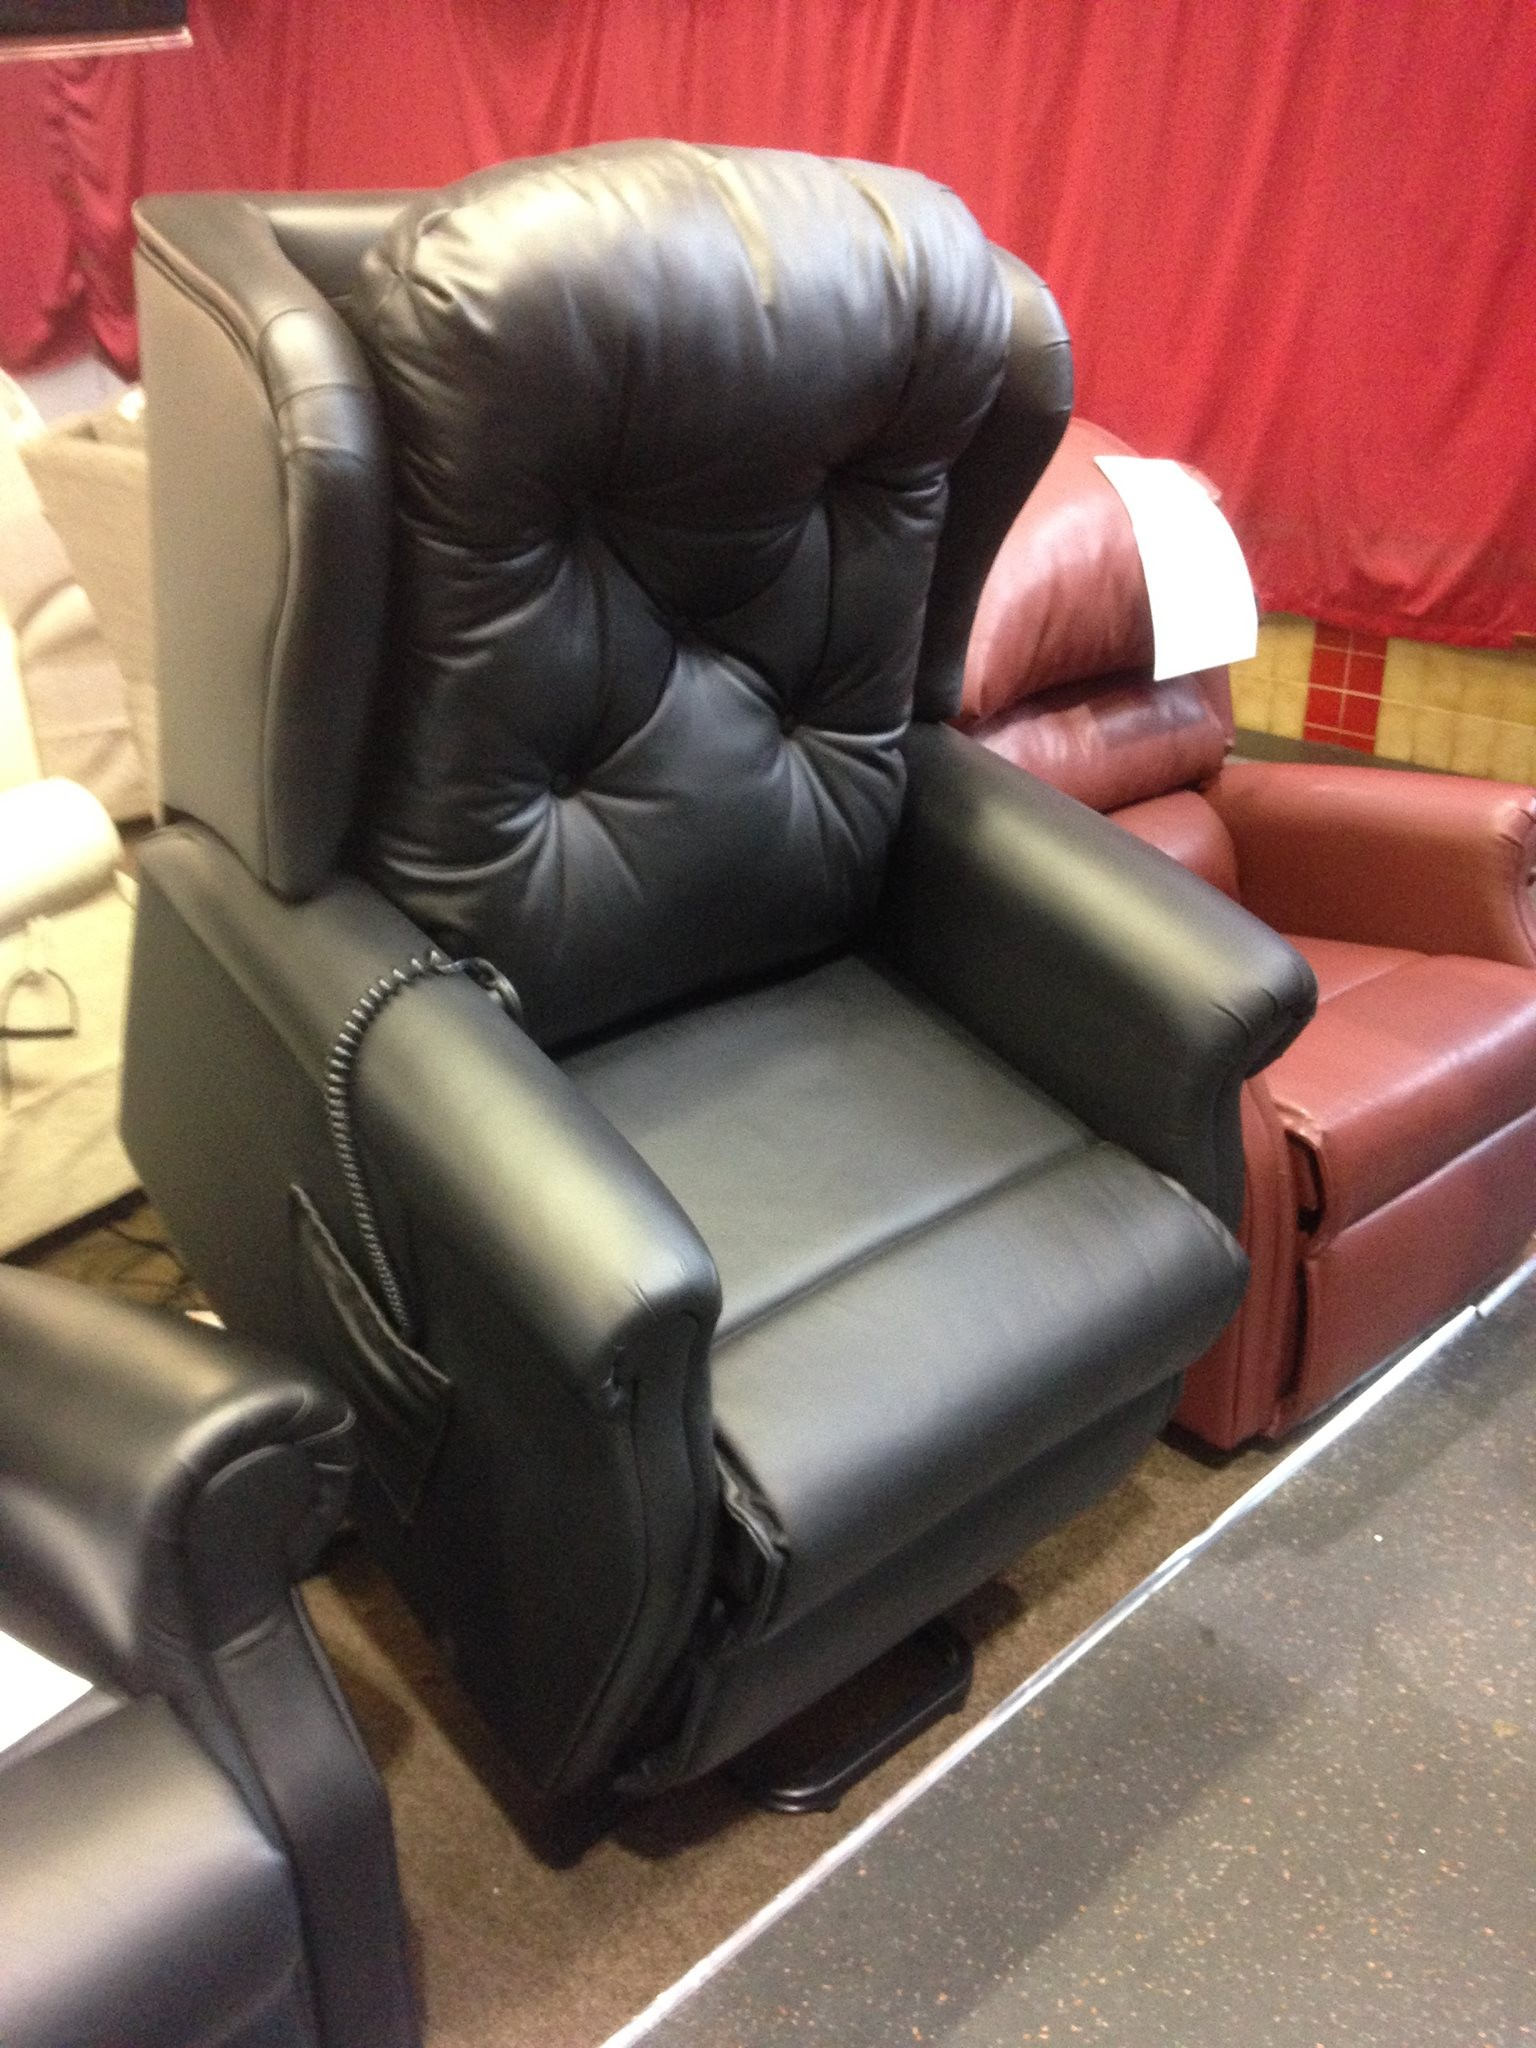 ... leather dual motor riser recliner chair. it is Brand new real leather button-back it is priced at £675 with 12 month guarantee. free delivery within ... & free recliner chair - Second Hand Household Furniture Buy and ... islam-shia.org